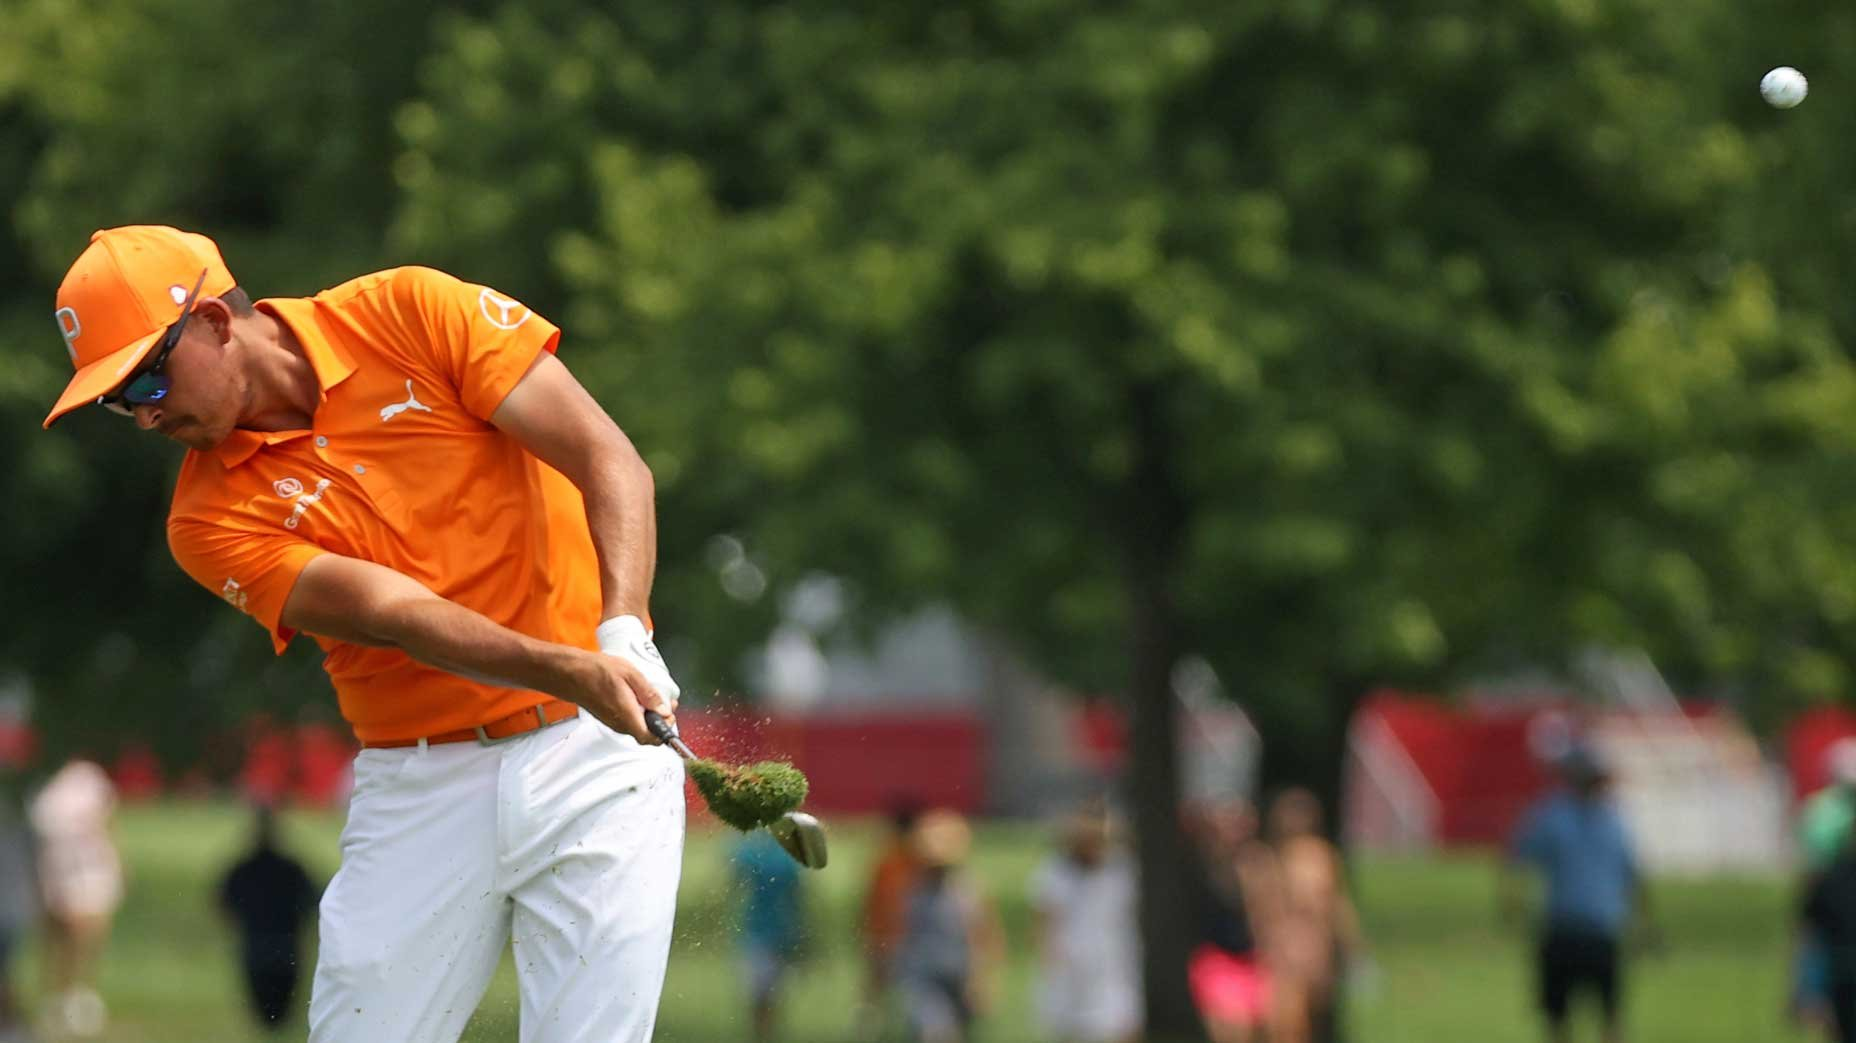 'Dodging bullets:' Rickie Fowler frustrated by Open Championship COVID-19 policies